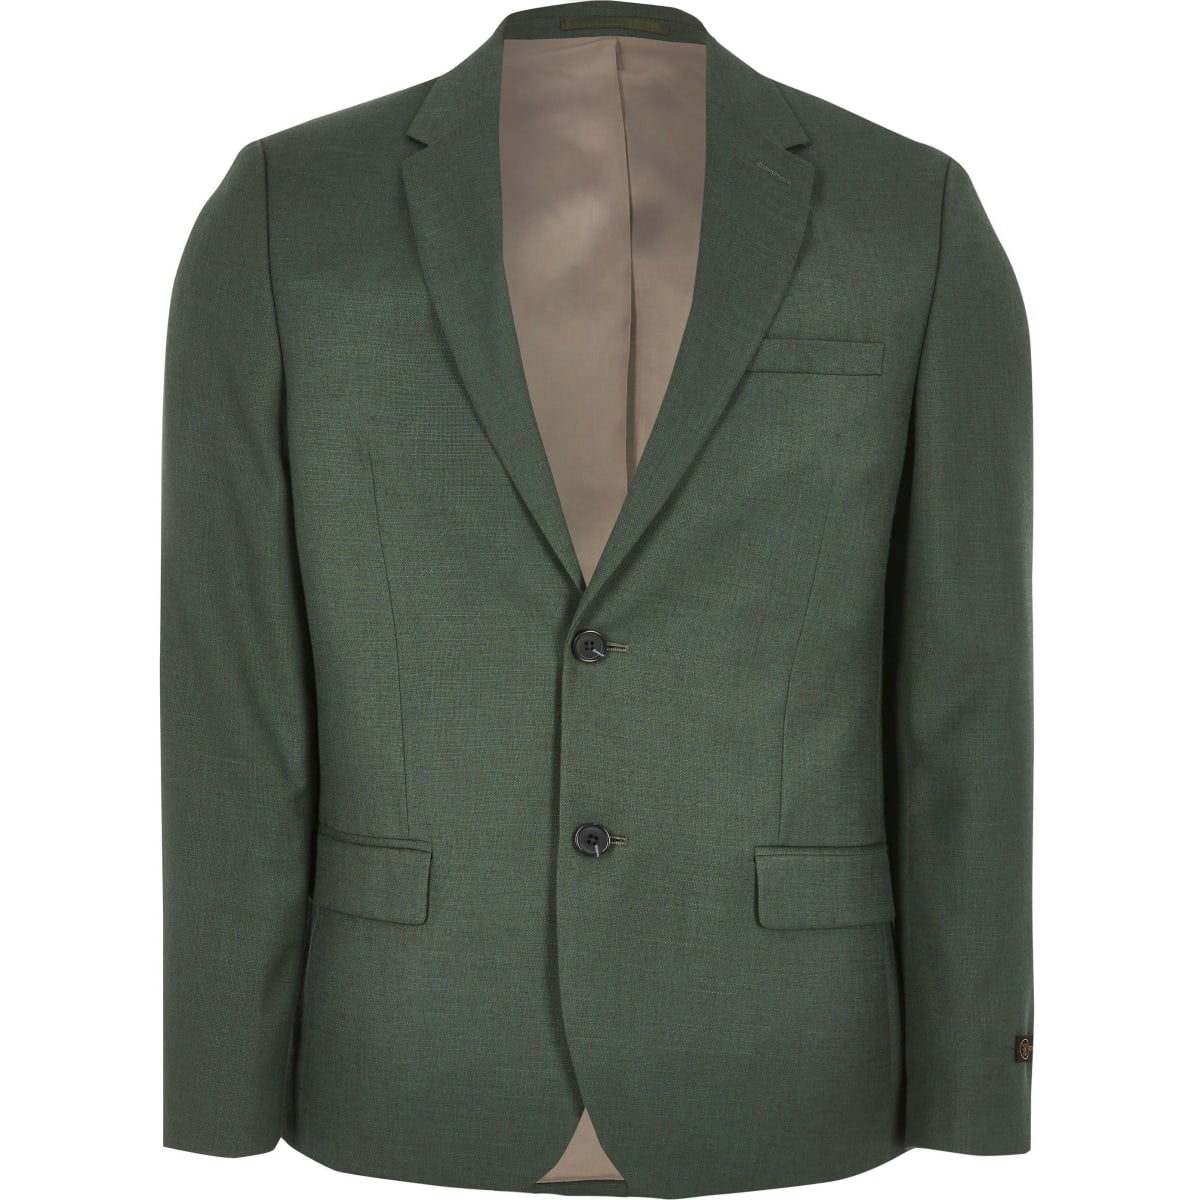 Big and Tall green suit jacket